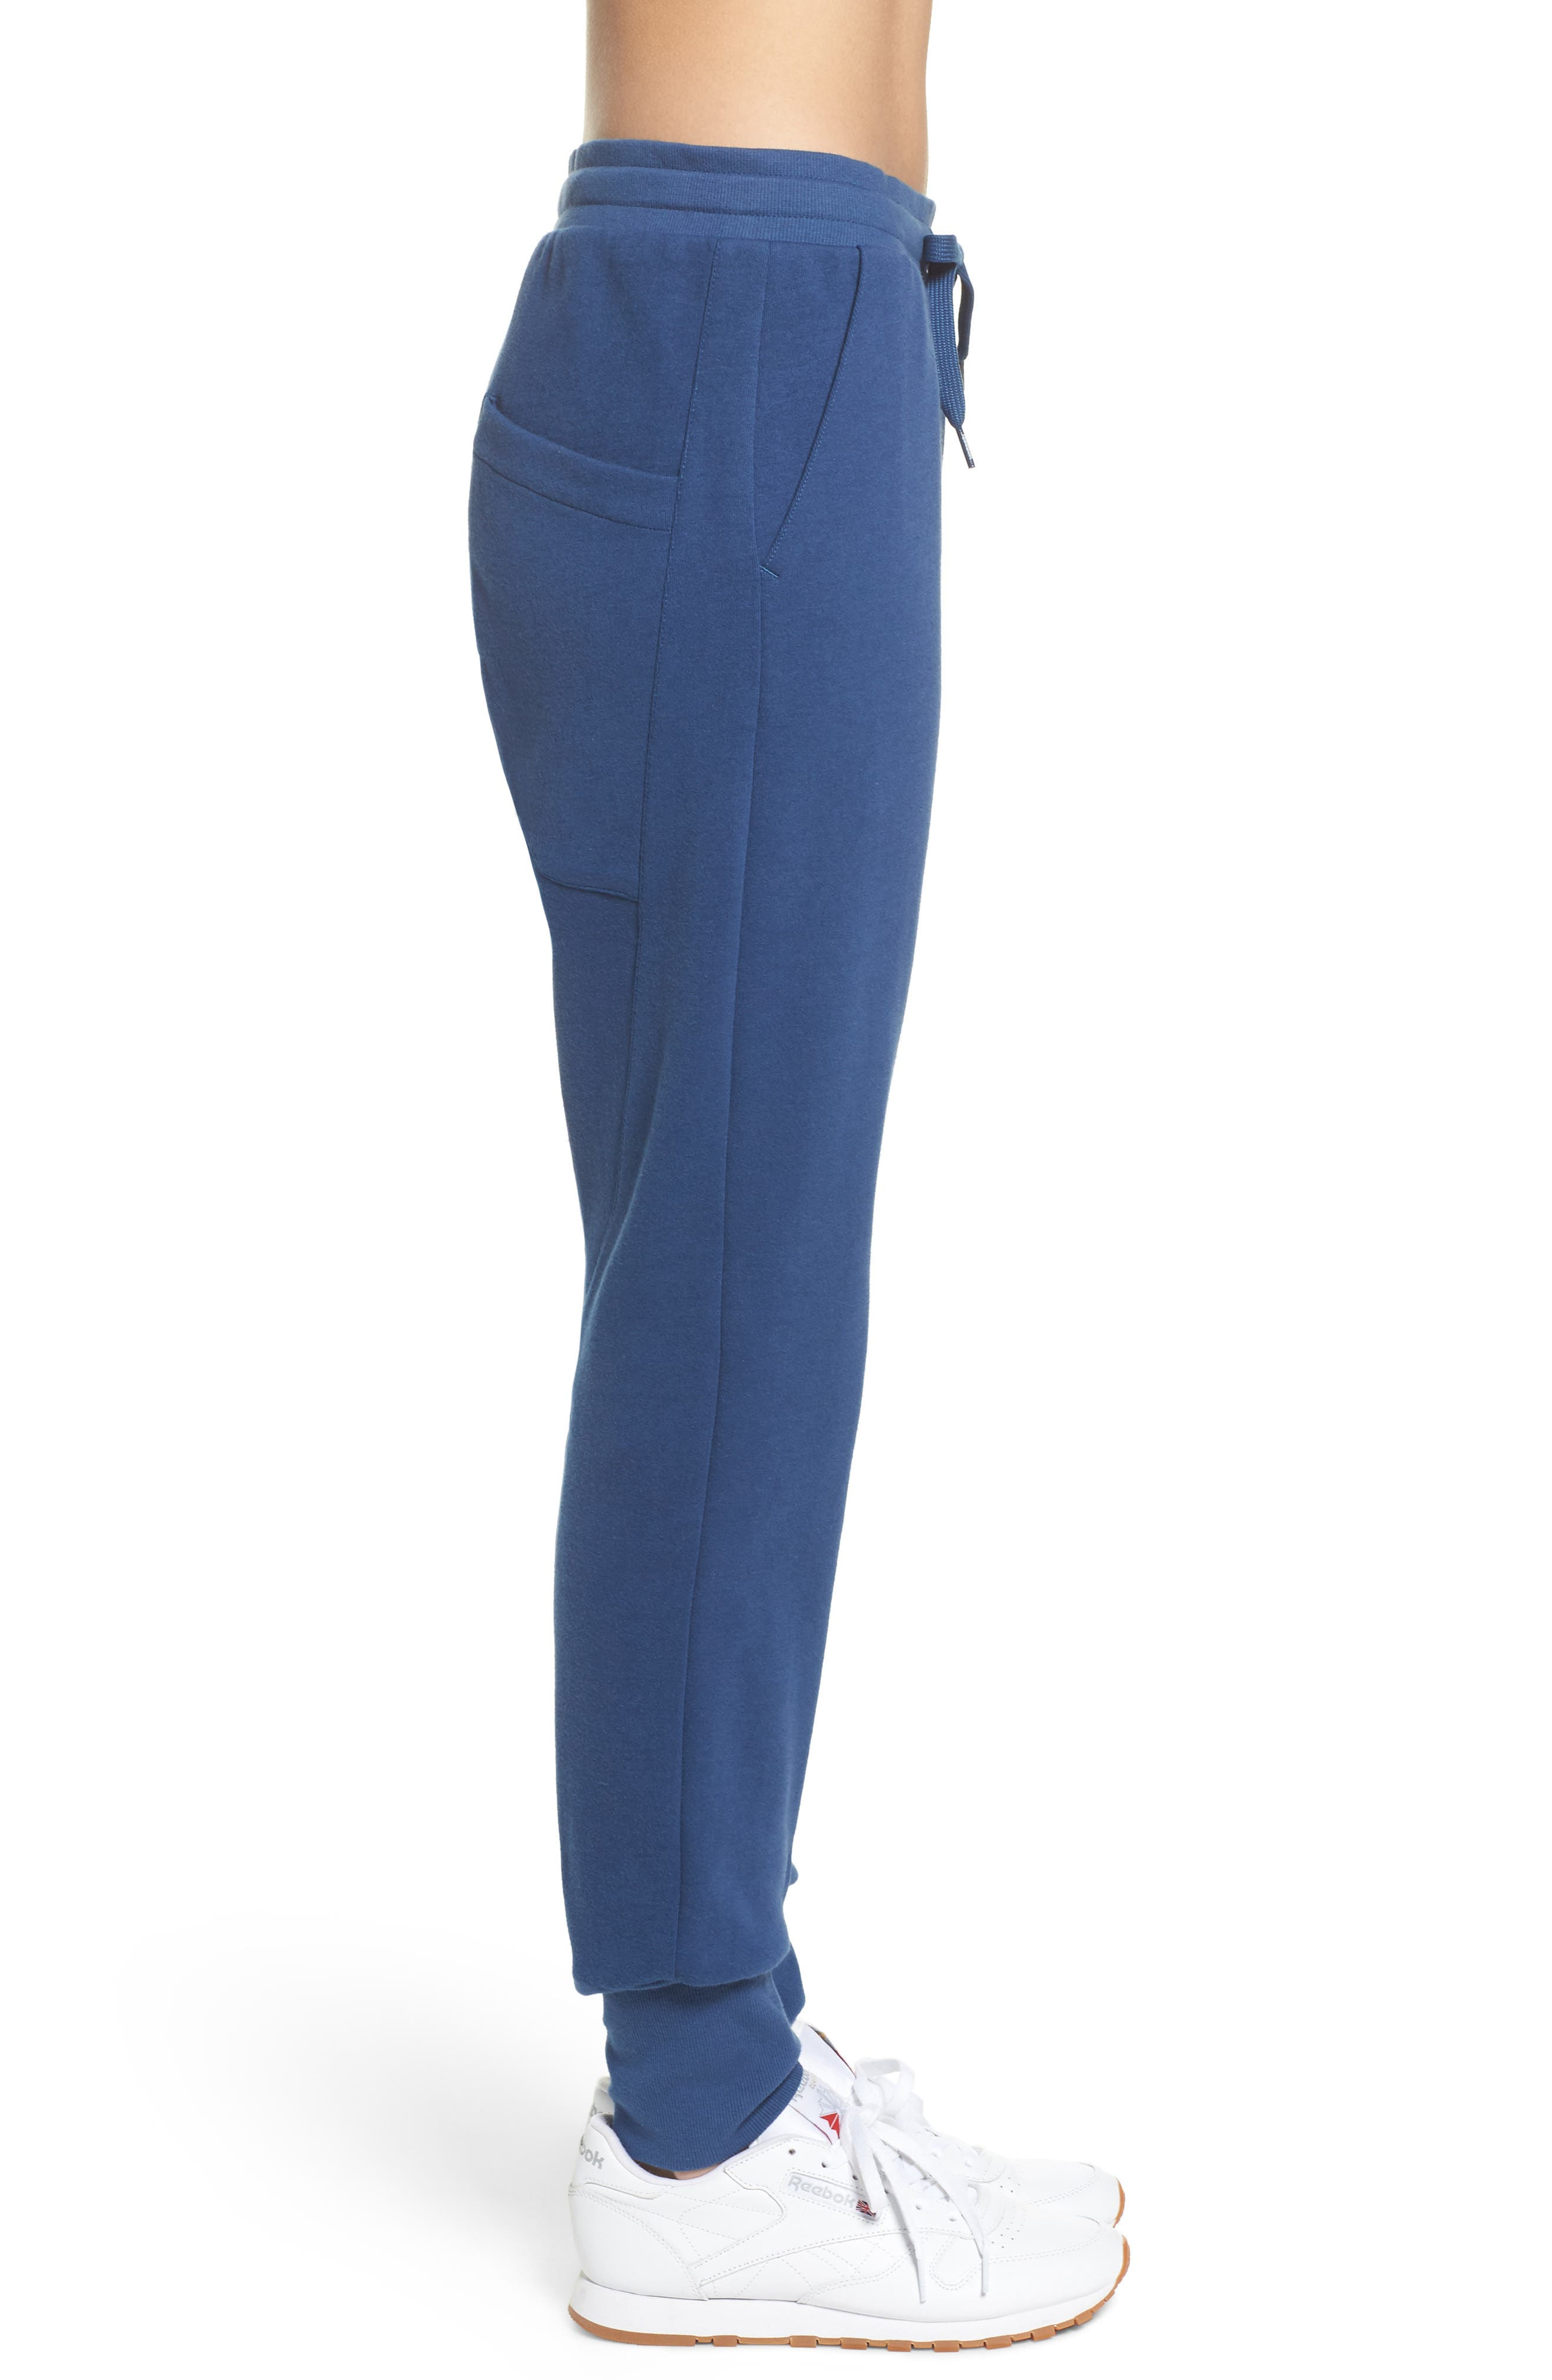 DC Jogger Pants,                             Alternate thumbnail 4, color,                             Washed Blue